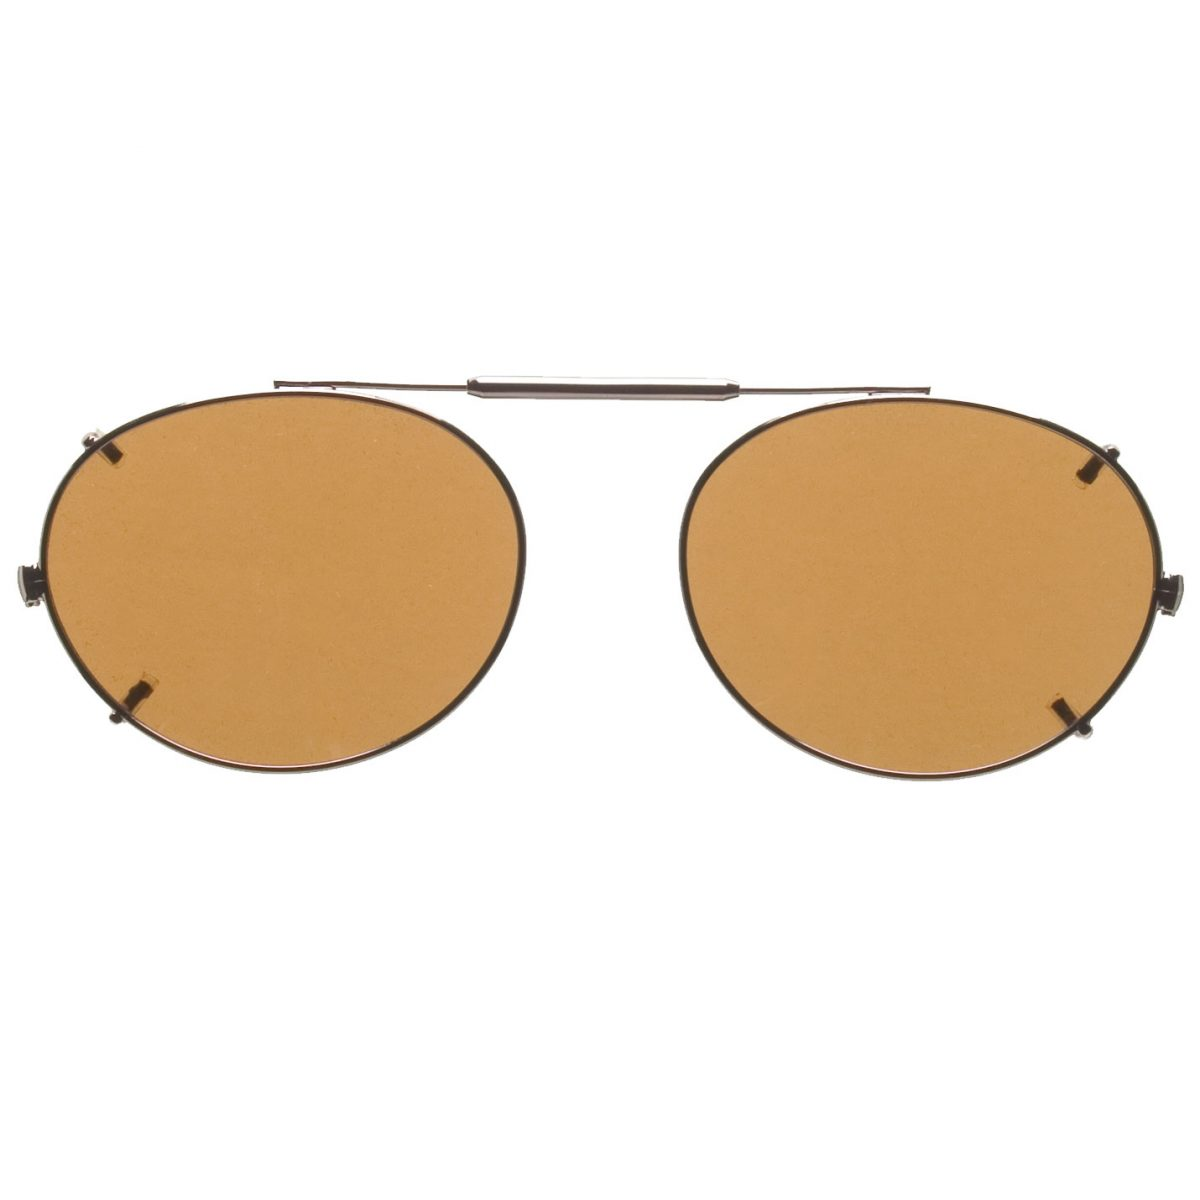 Visionaries-clips-on-sunglasses-Oval